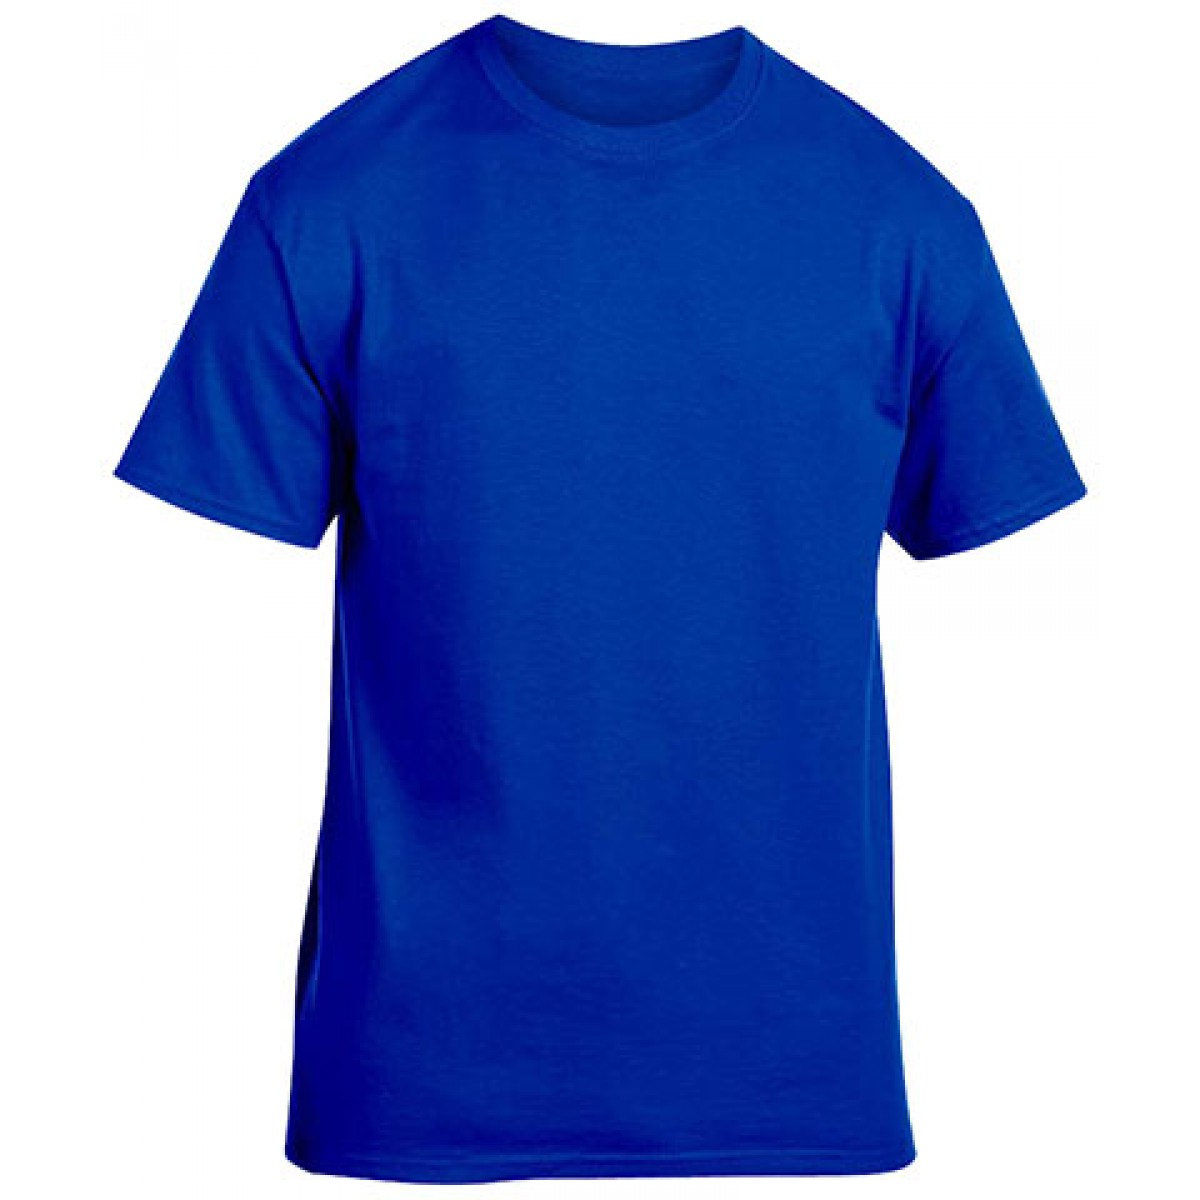 Cotton Short Sleeve T-Shirt-Royal Blue-YM